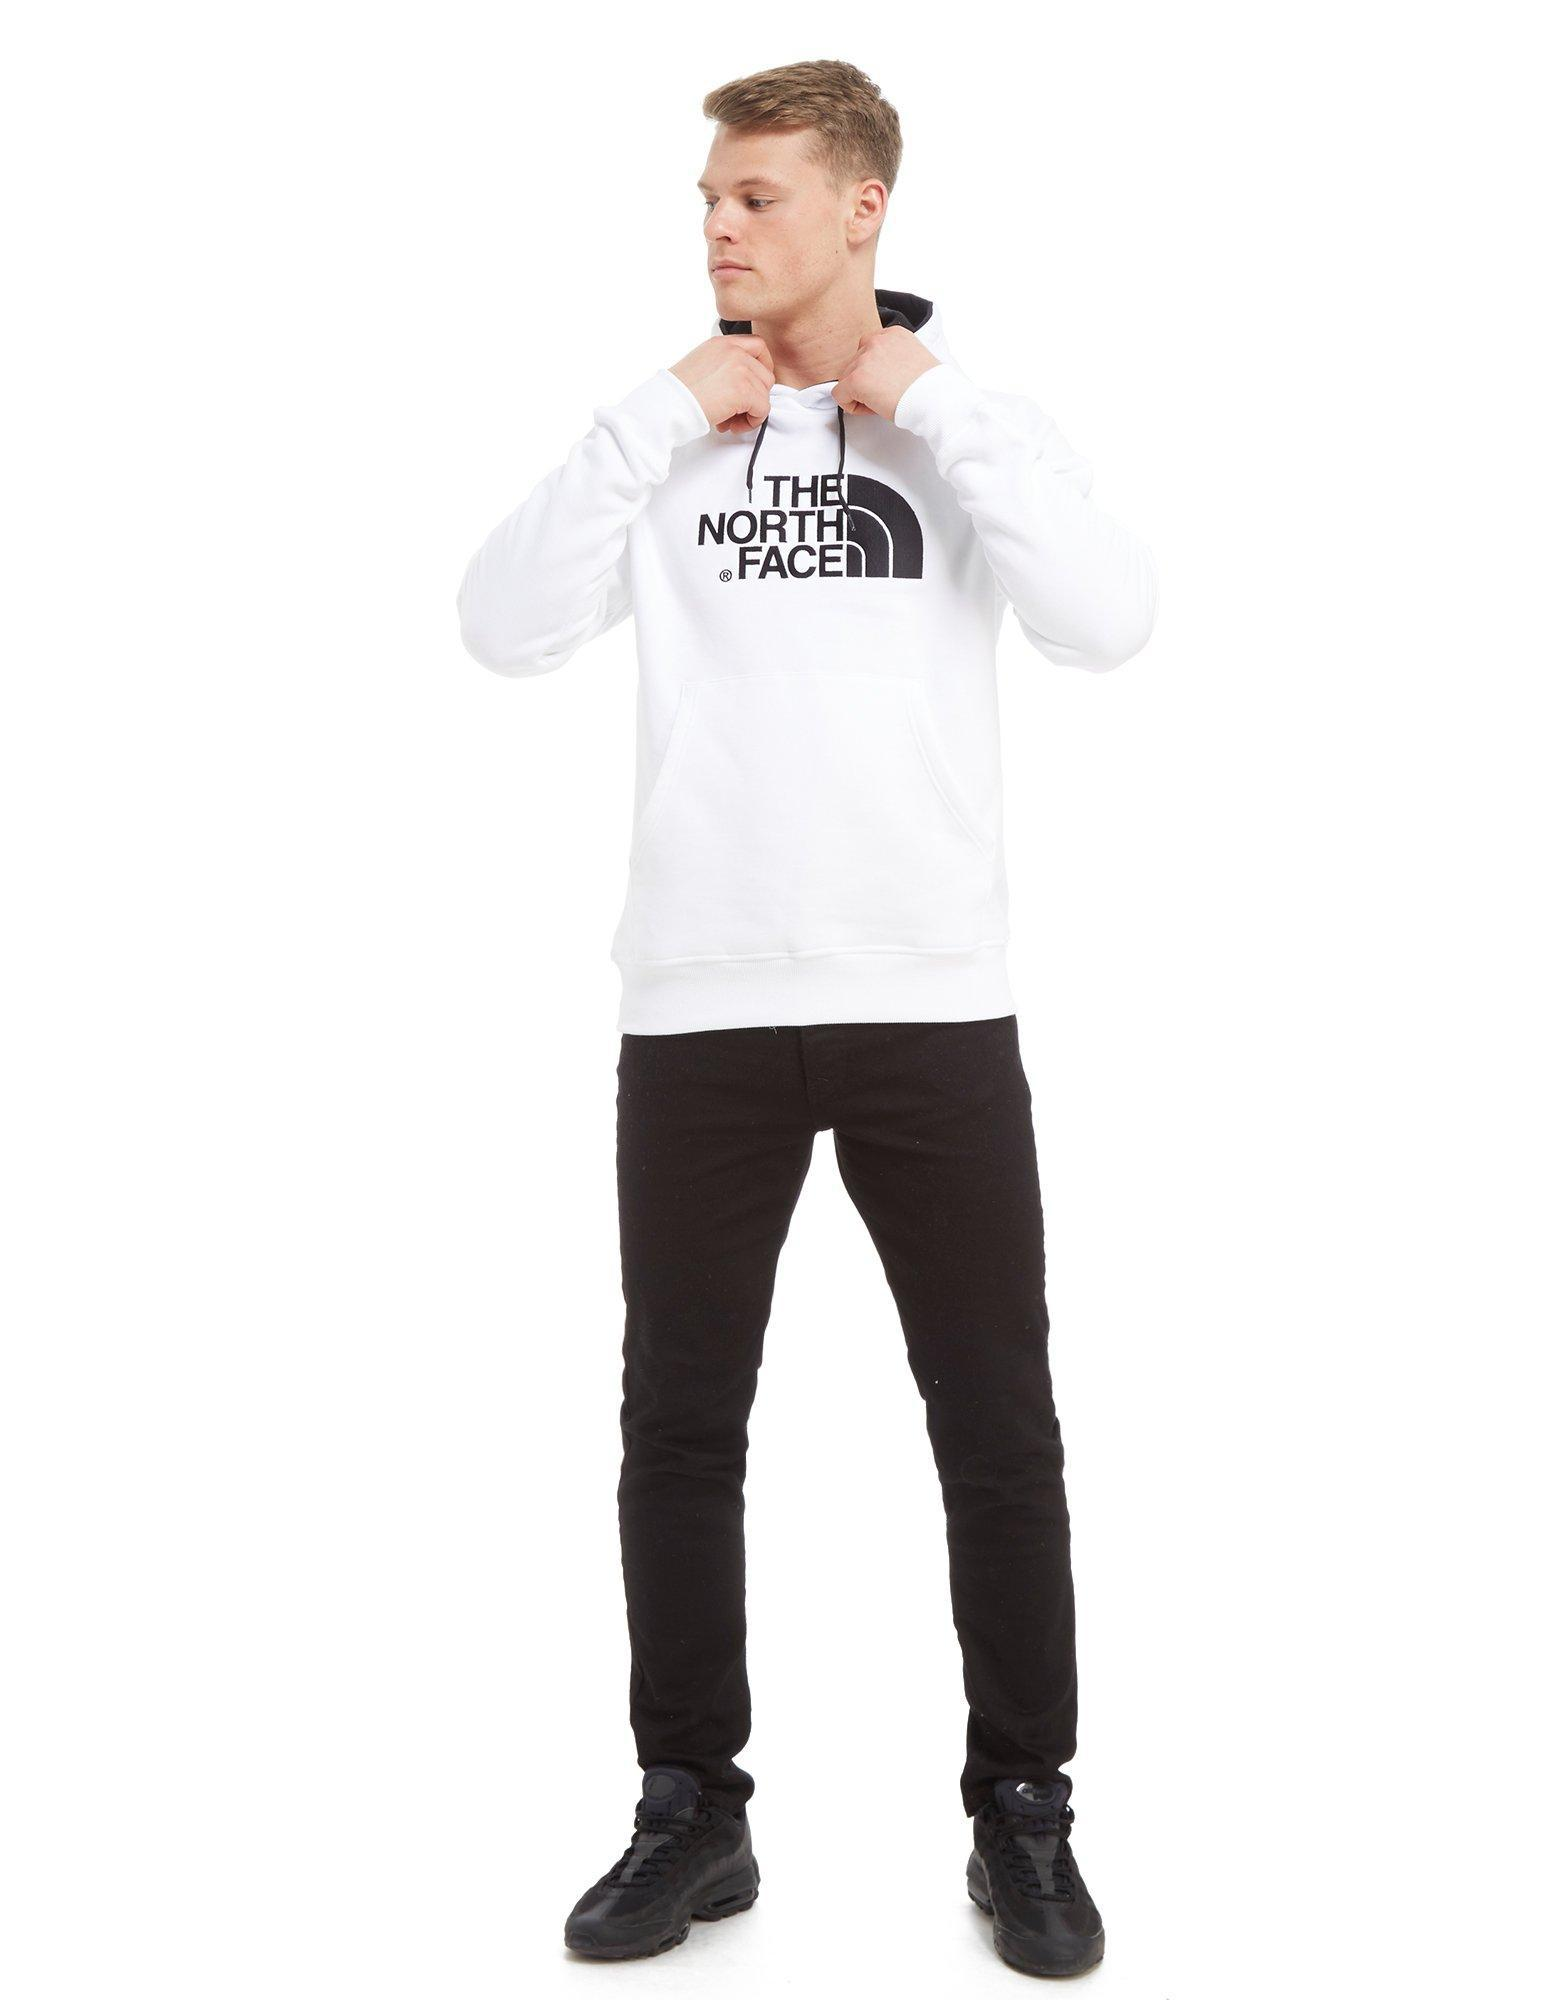 The North Face Cotton Drew Peak Hoodie in White/Black (White) for Men